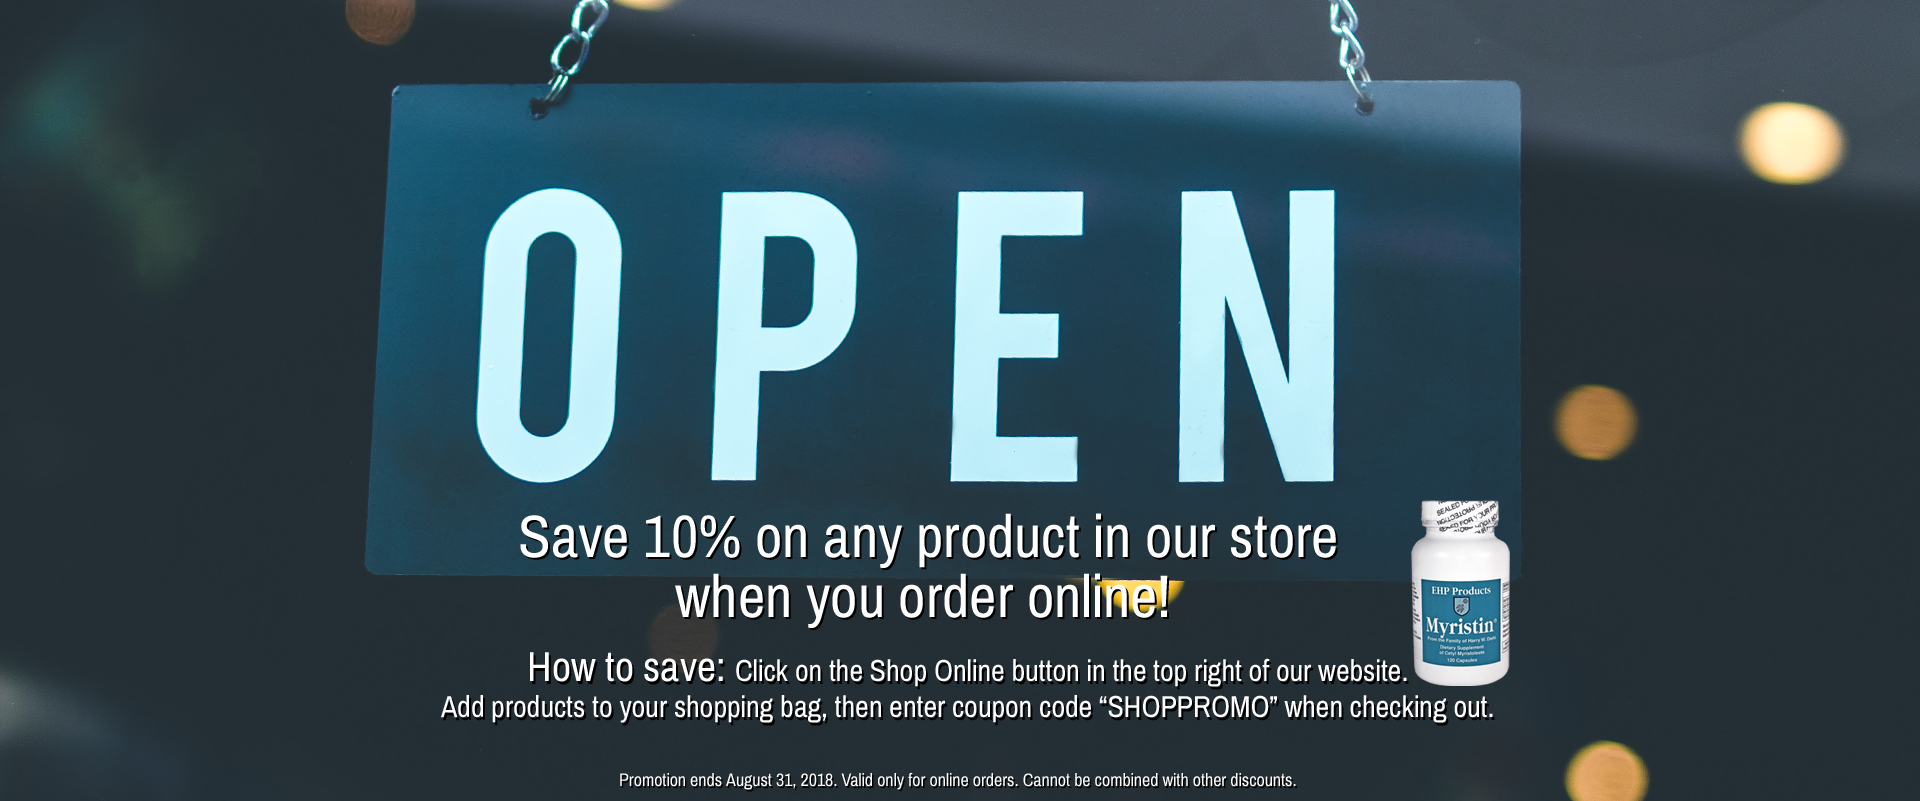 Online Order Discount Ad2 copy.png